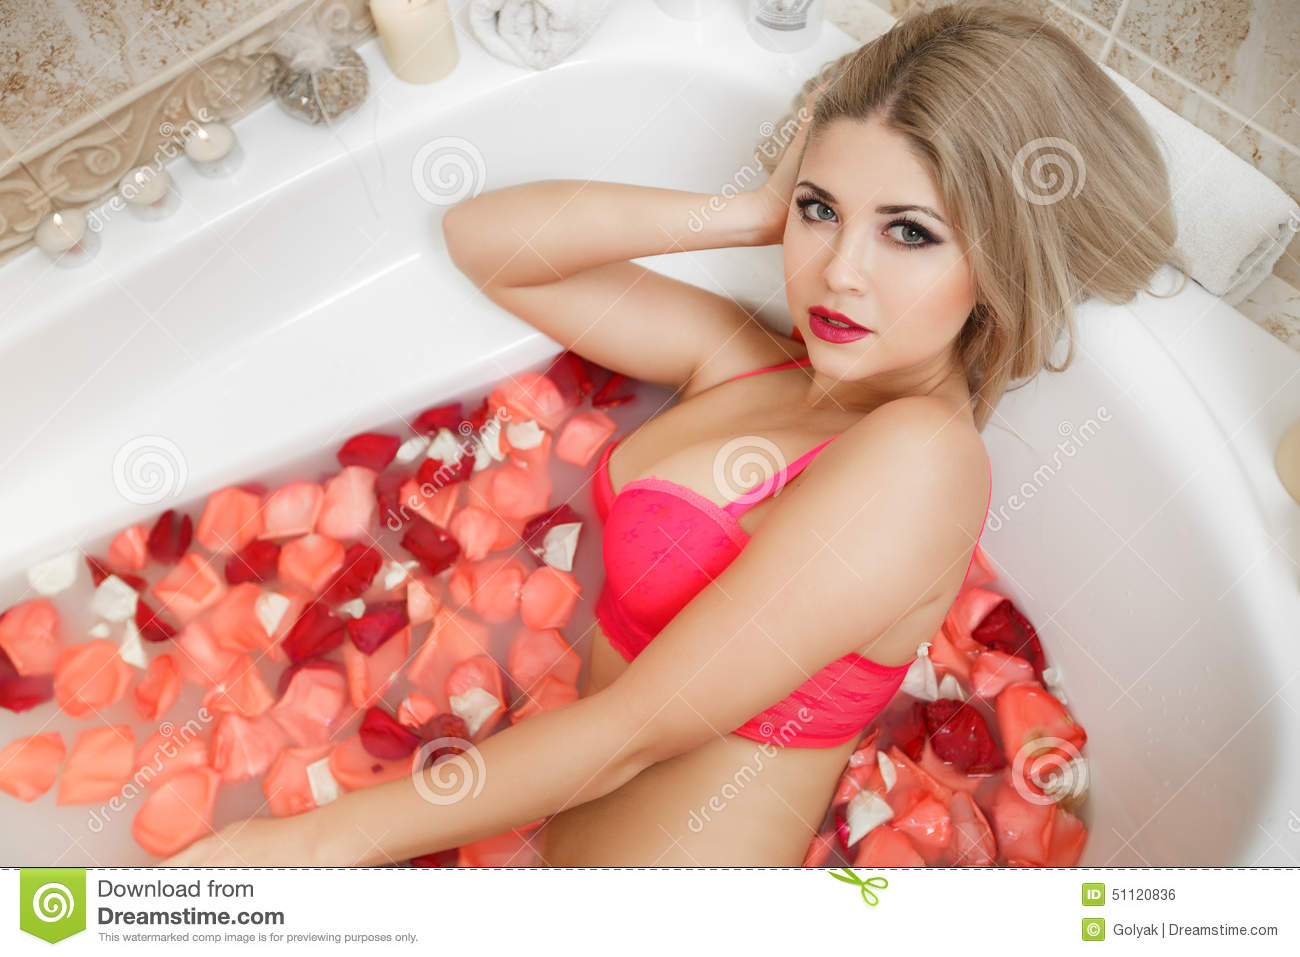 In nude bath tub girl